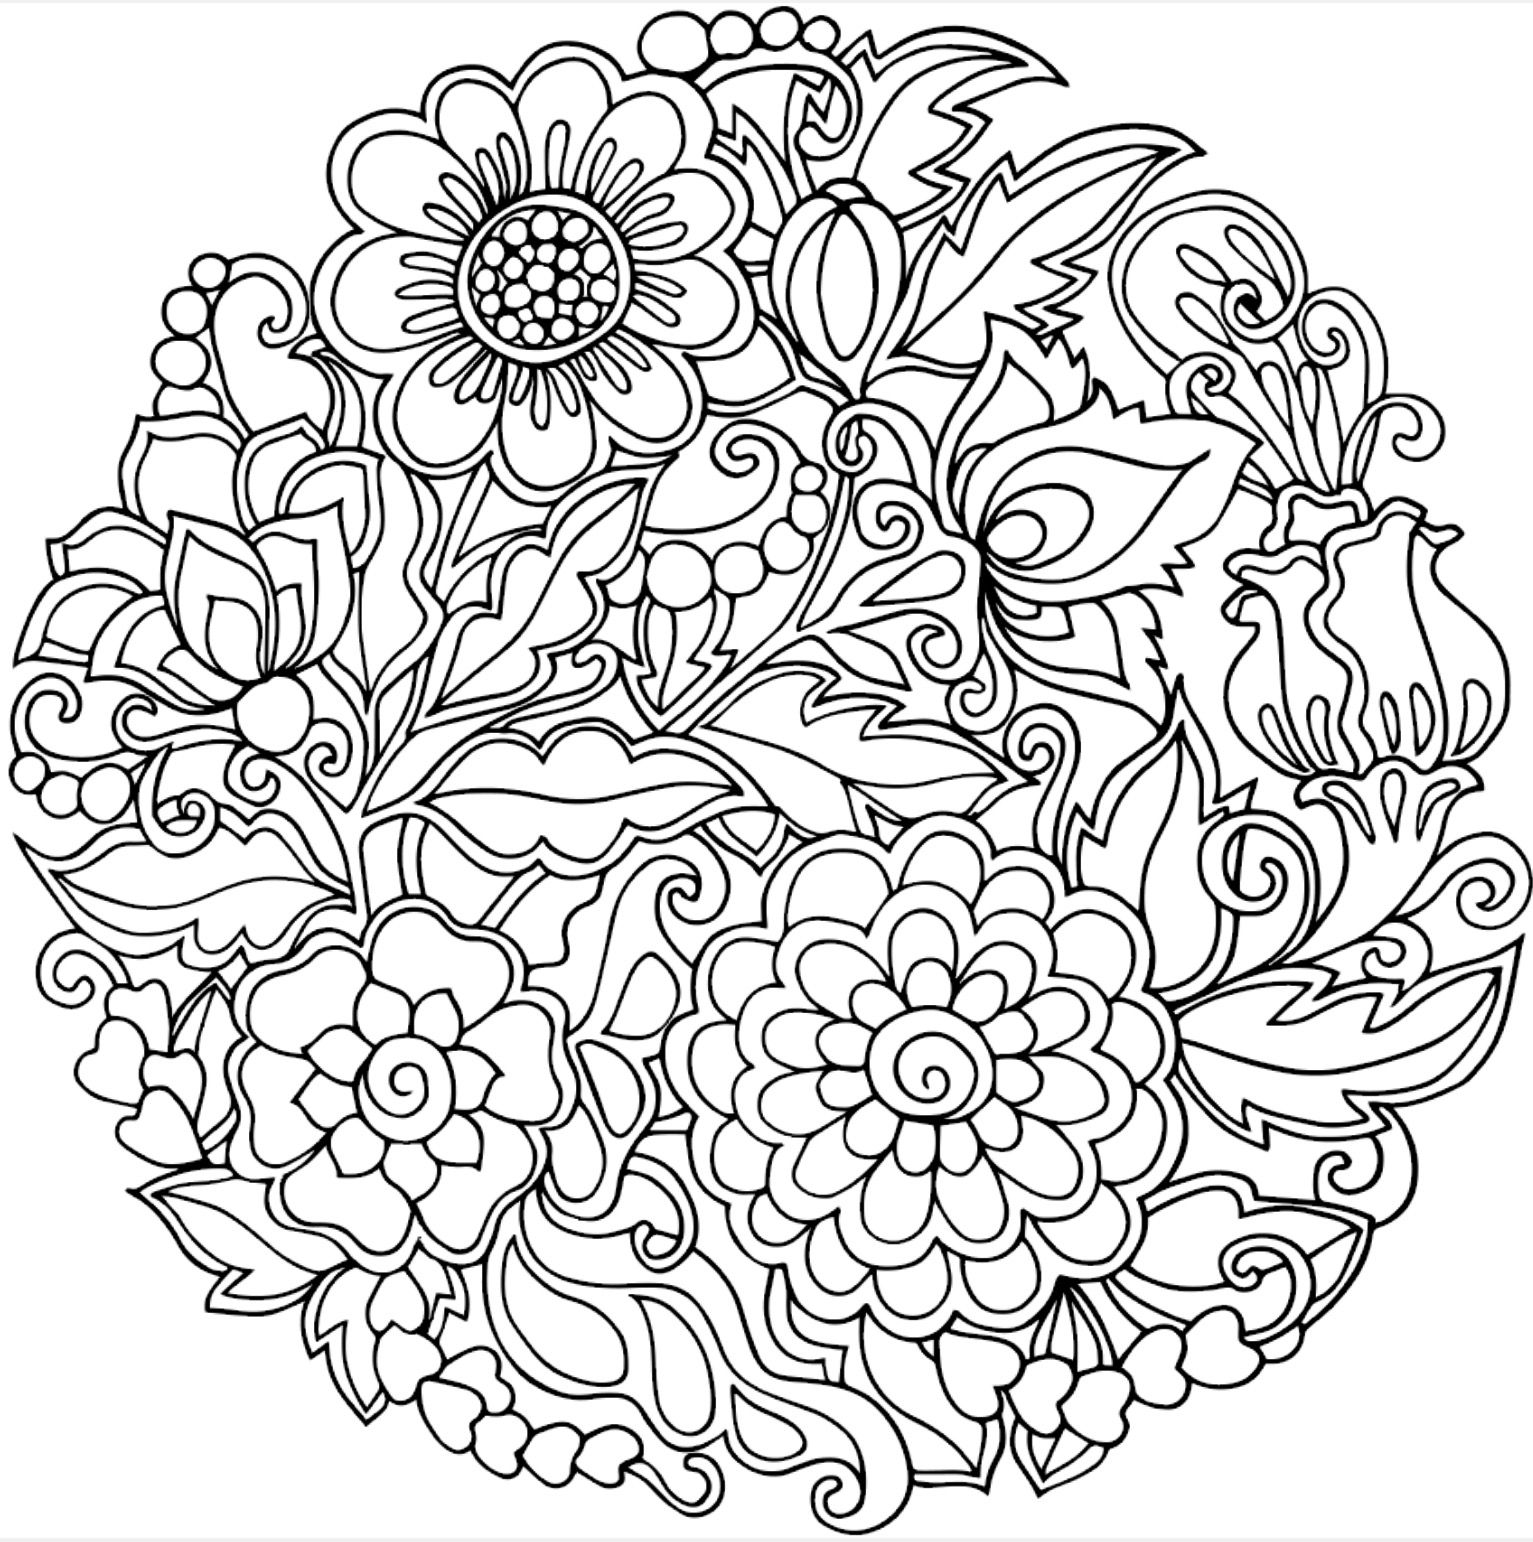 Floral circle coloring page | Colorfy app | Floral Coloring Pages ...